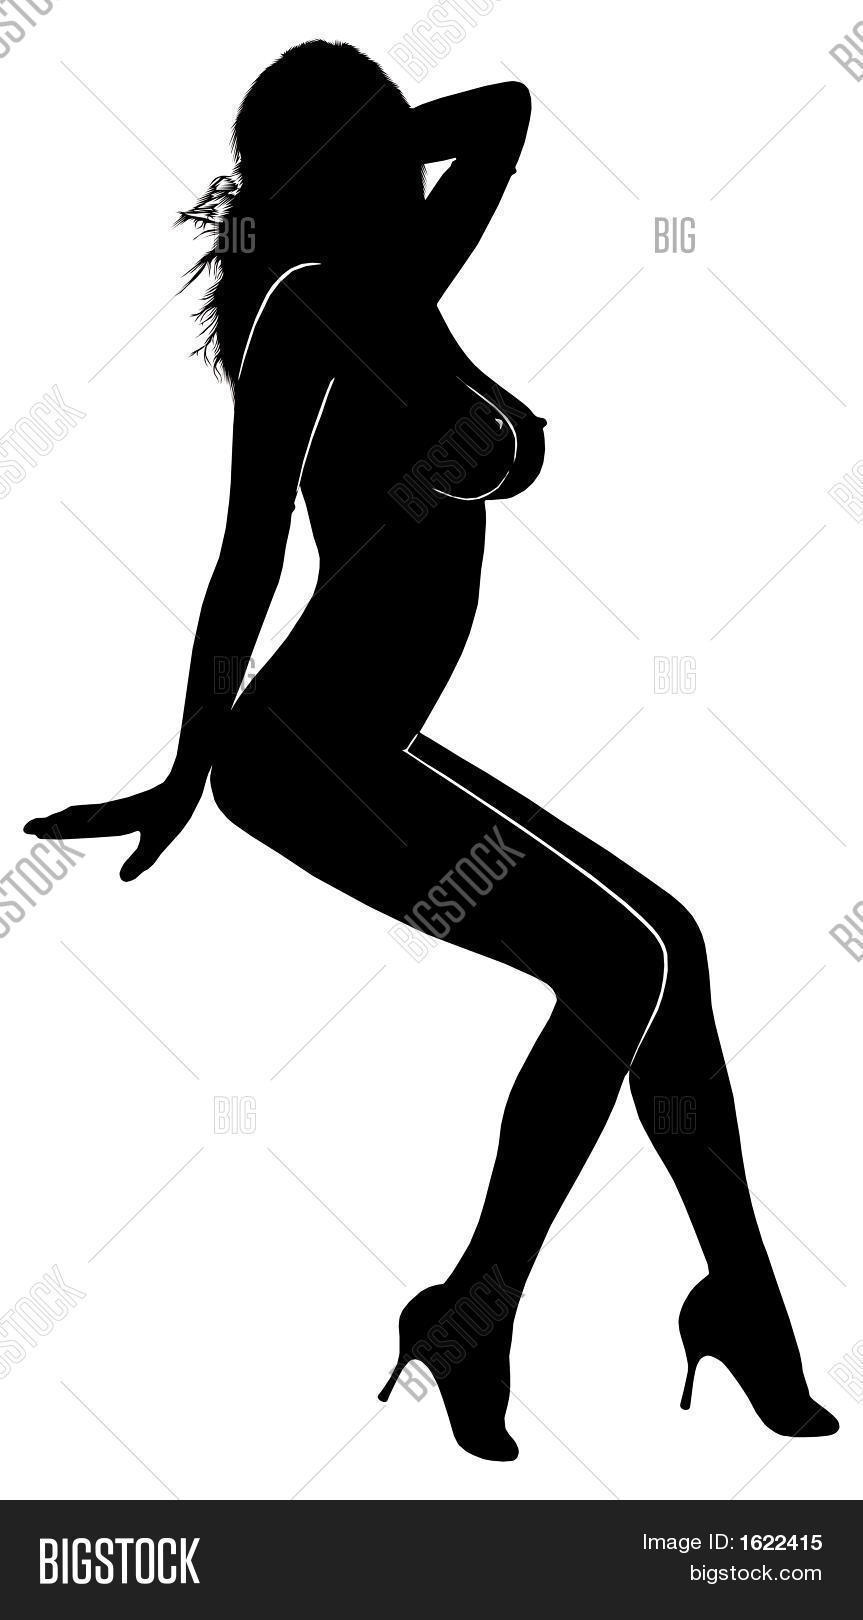 863x1620 Woman Silhouette 012 Image Amp Photo Bigstock